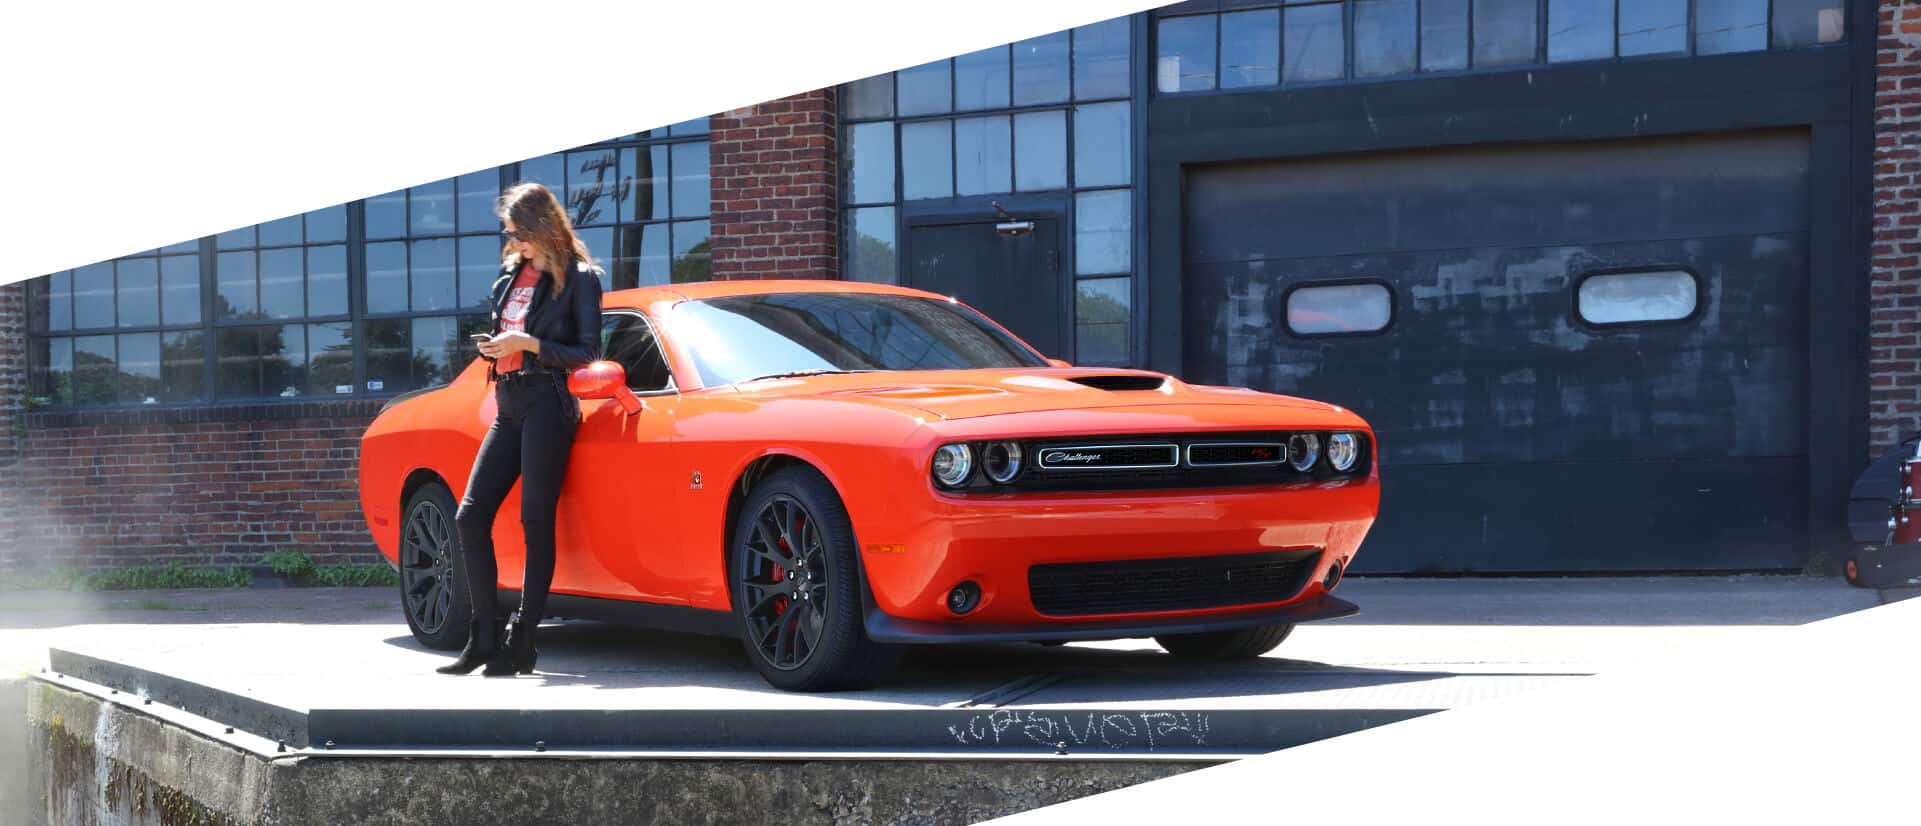 2019 Dodge Challenger - Safety and Security Features